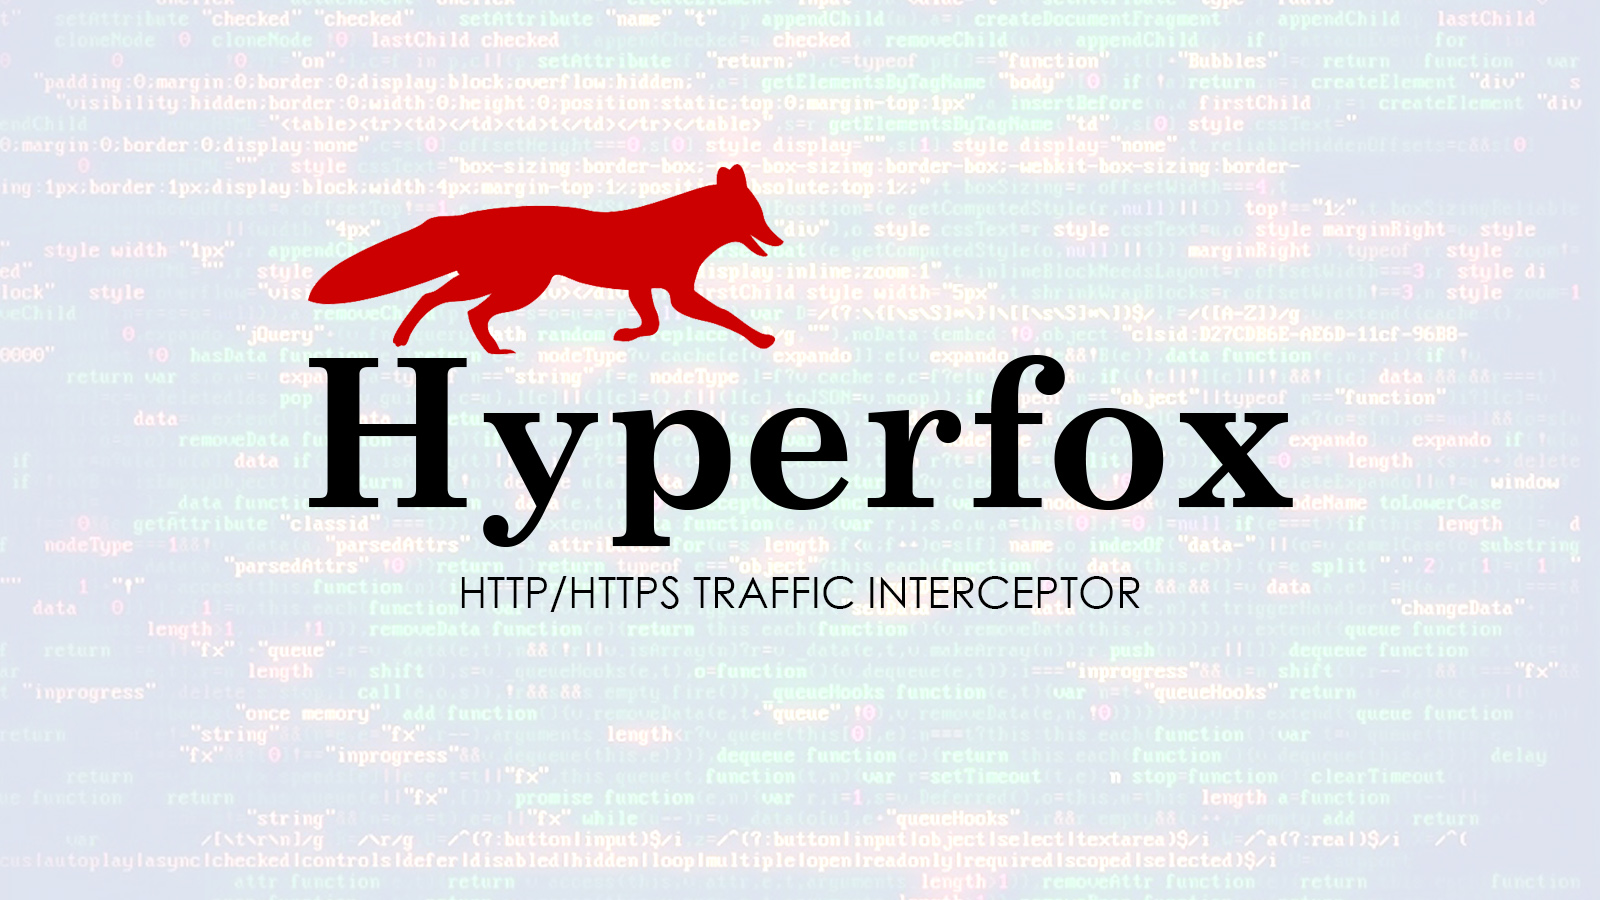 Hyperfox - HTTP/HTTPS Traffic Interceptor